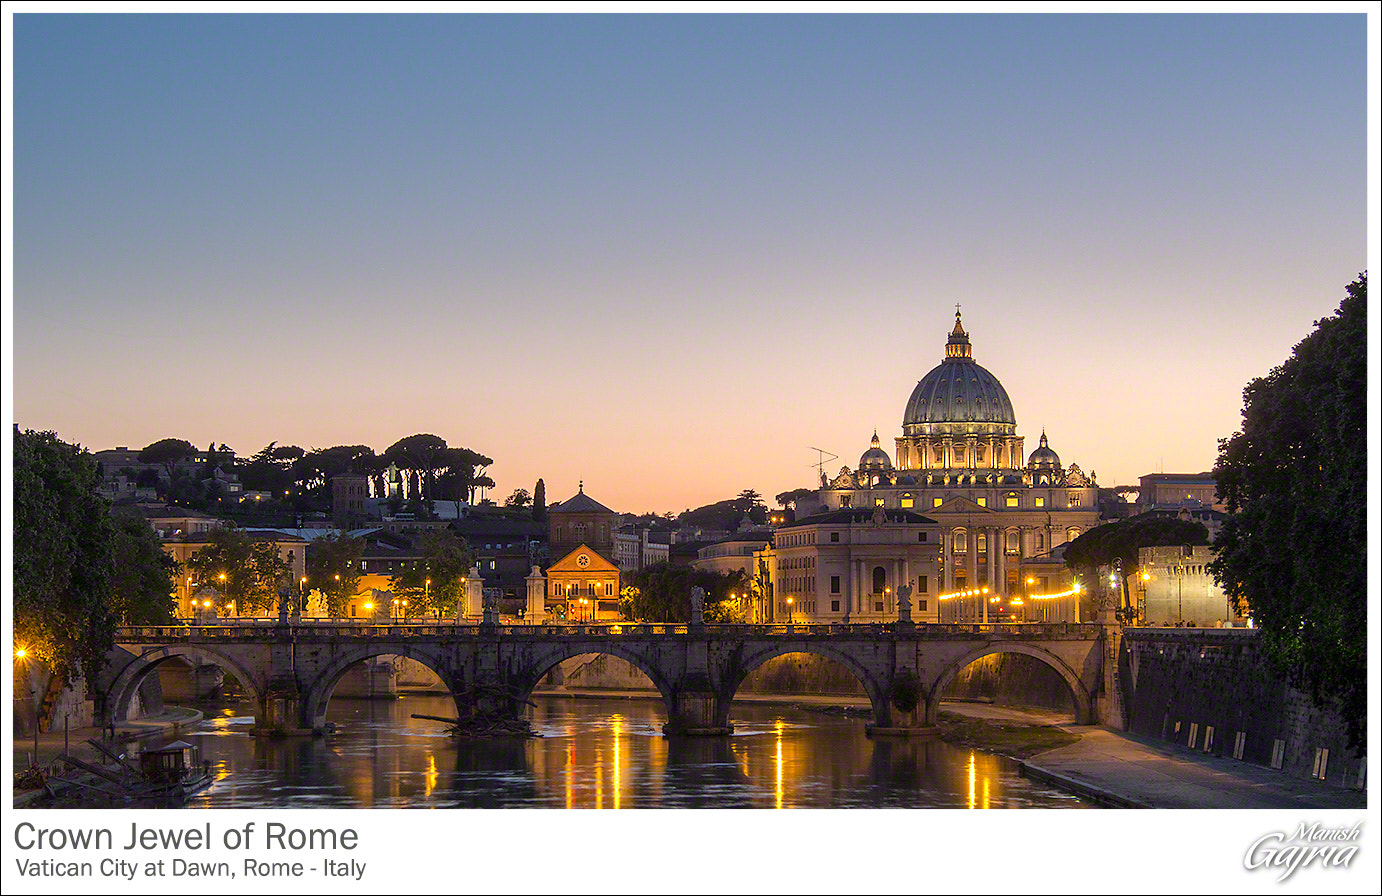 Photograph Crown Jewel of Rome by Manish Gajria on 500px